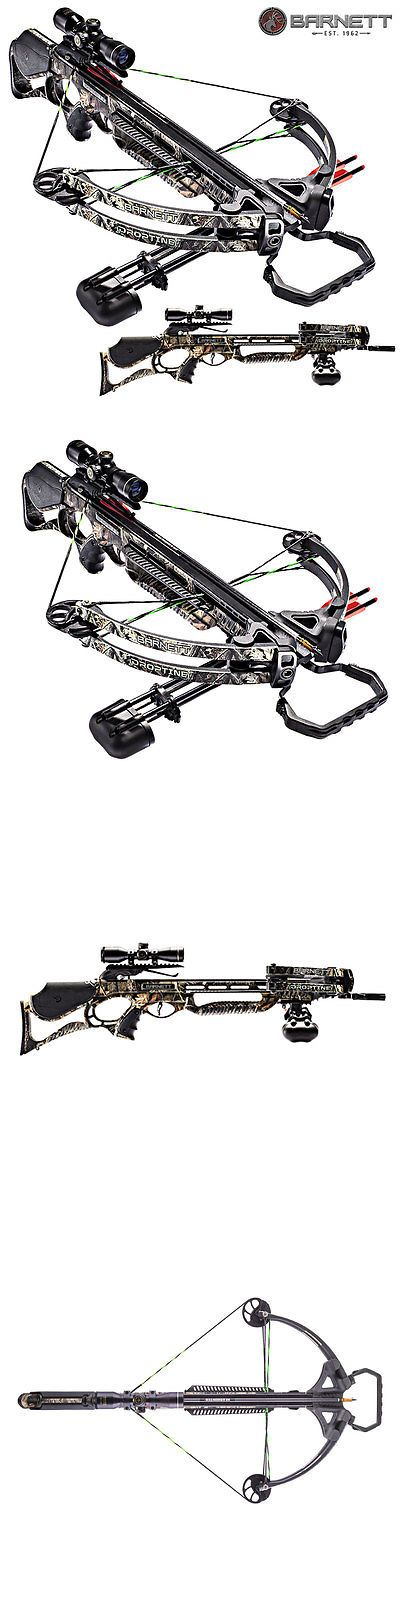 Crossbows 33972: Barnett Droptine Compound Crossbow Combo Package -> BUY IT NOW ONLY: $371.4 on eBay!